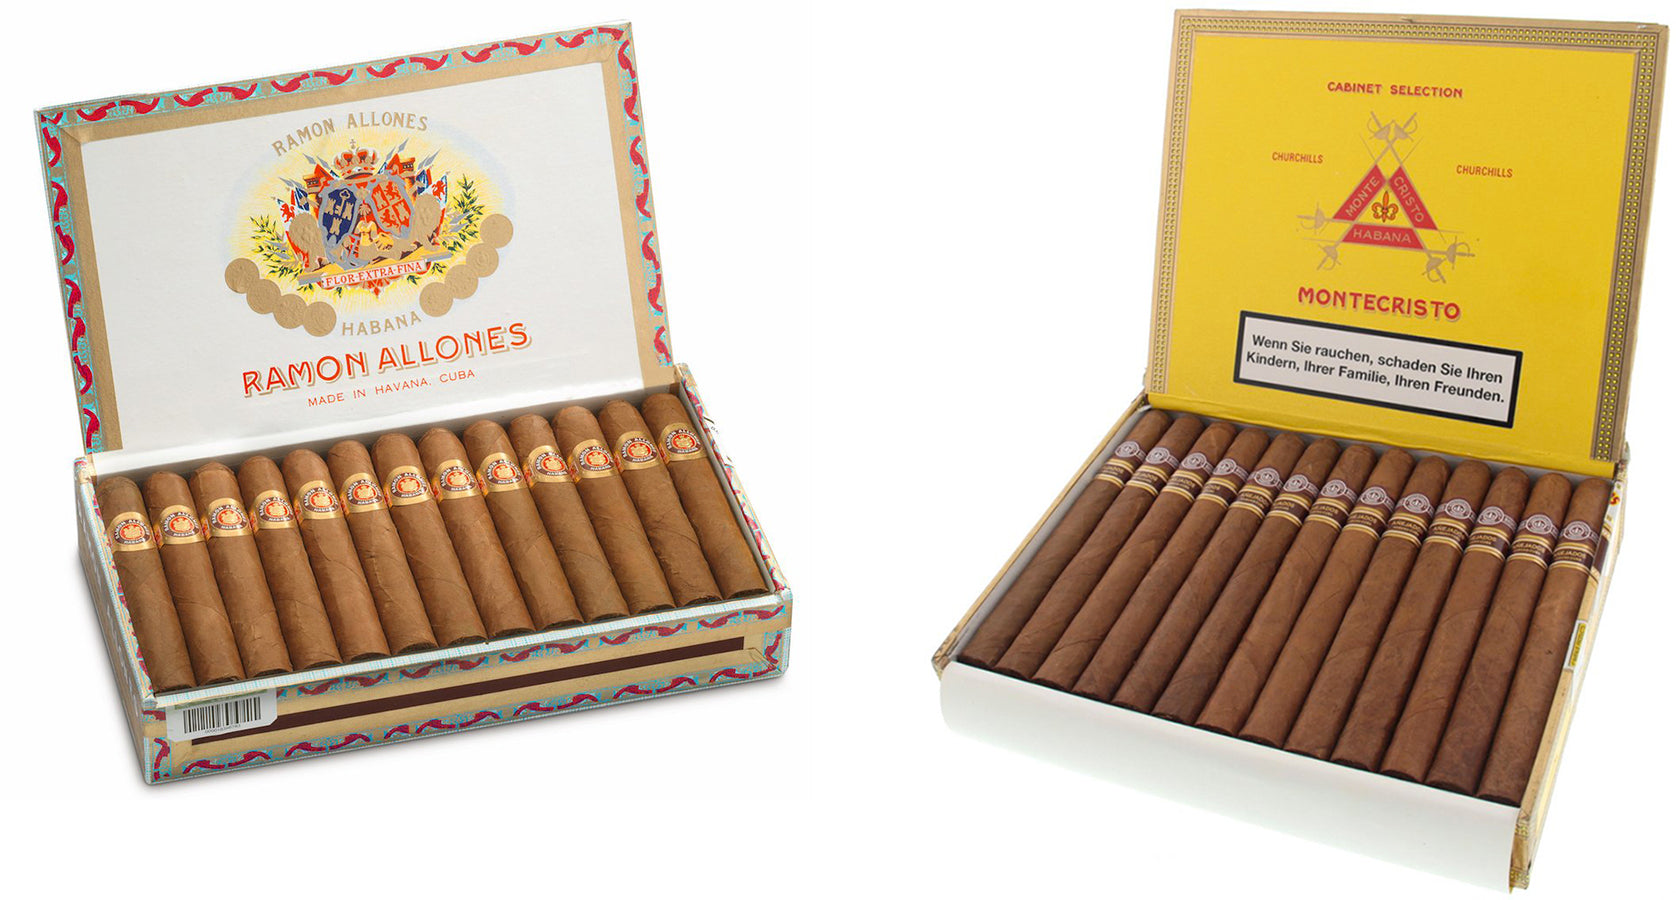 ramon allones small club coronas cuban cigars and montecristo churchills anejados cigar EGM Cigars